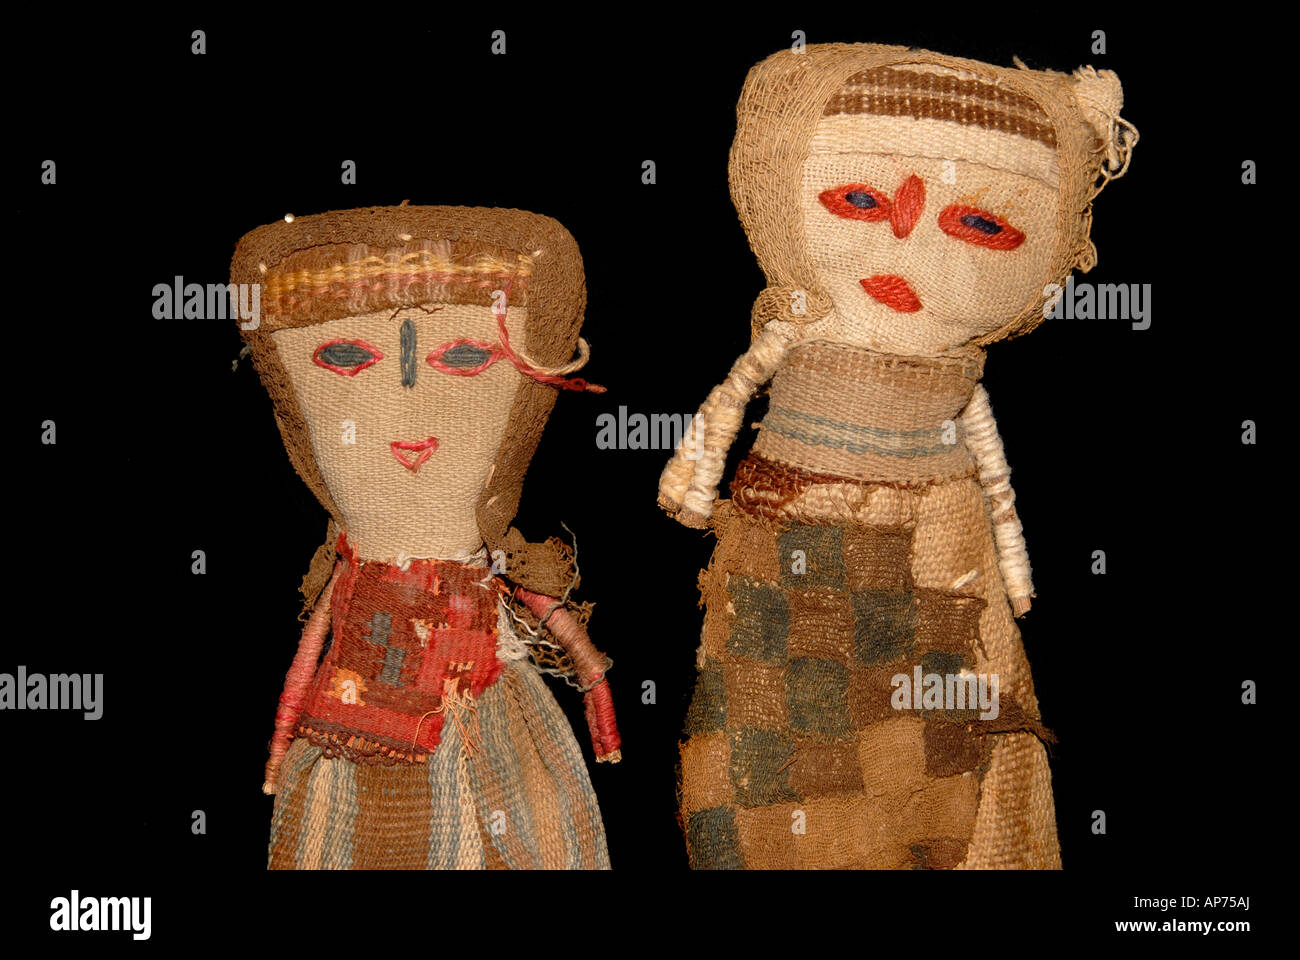 Precolombian fabric used to make doll souvenirs from Per - Stock Image